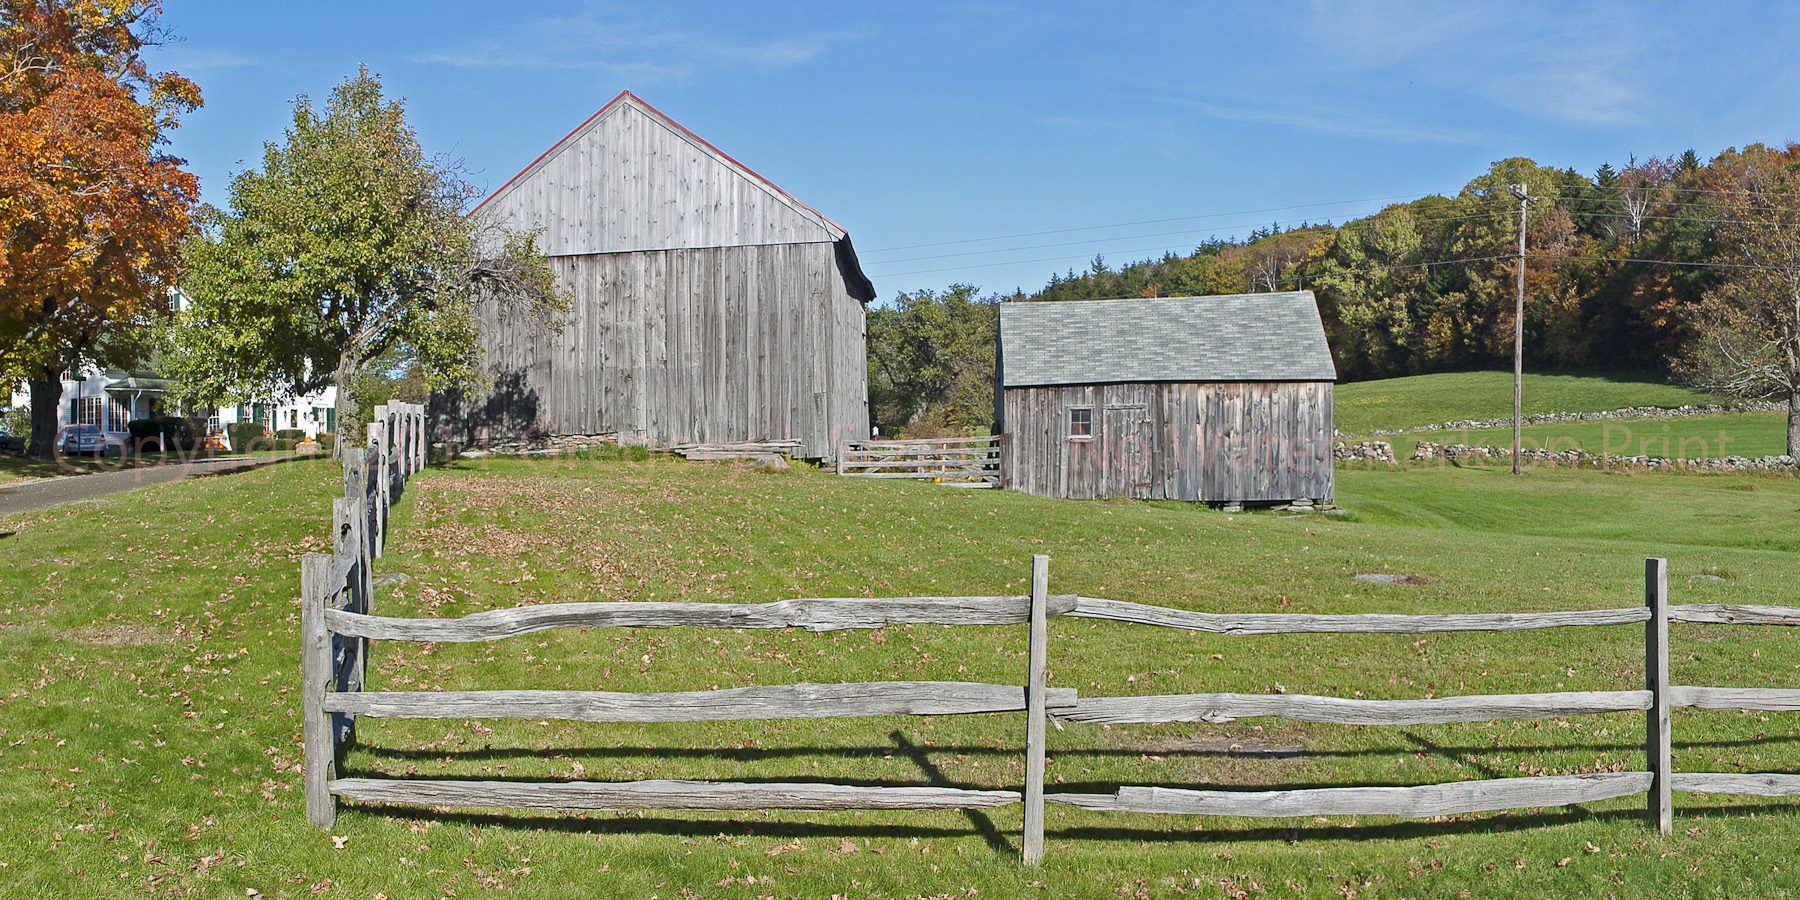 Farm With Split Rail Fence Copyright 2011 Gregory J Scott